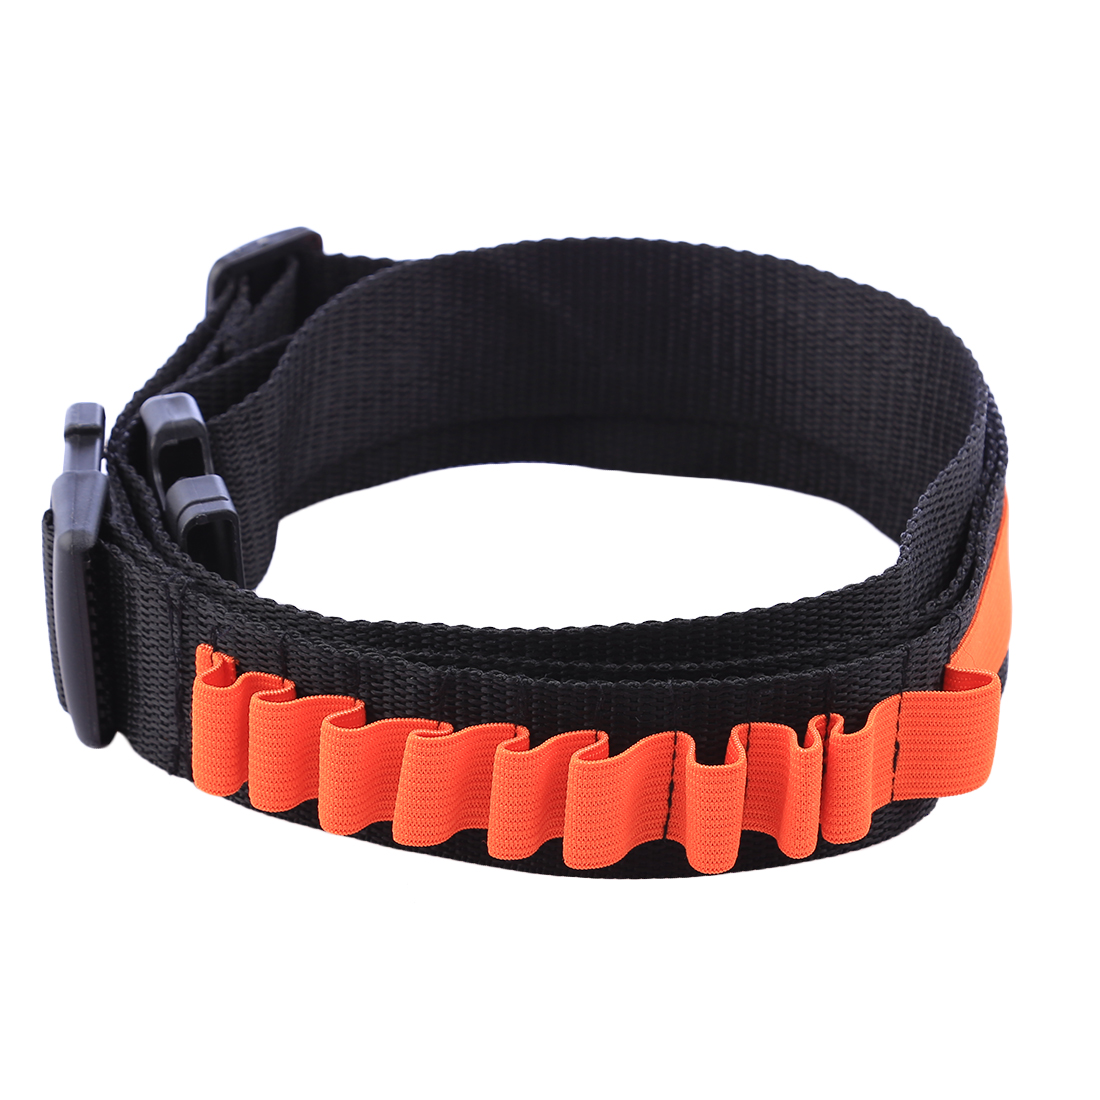 Toy Gun Tactical Equipment Military Straps Magazine For Nerf Soft Bullet Blaster CS Battle Tactical Accessories Replacement